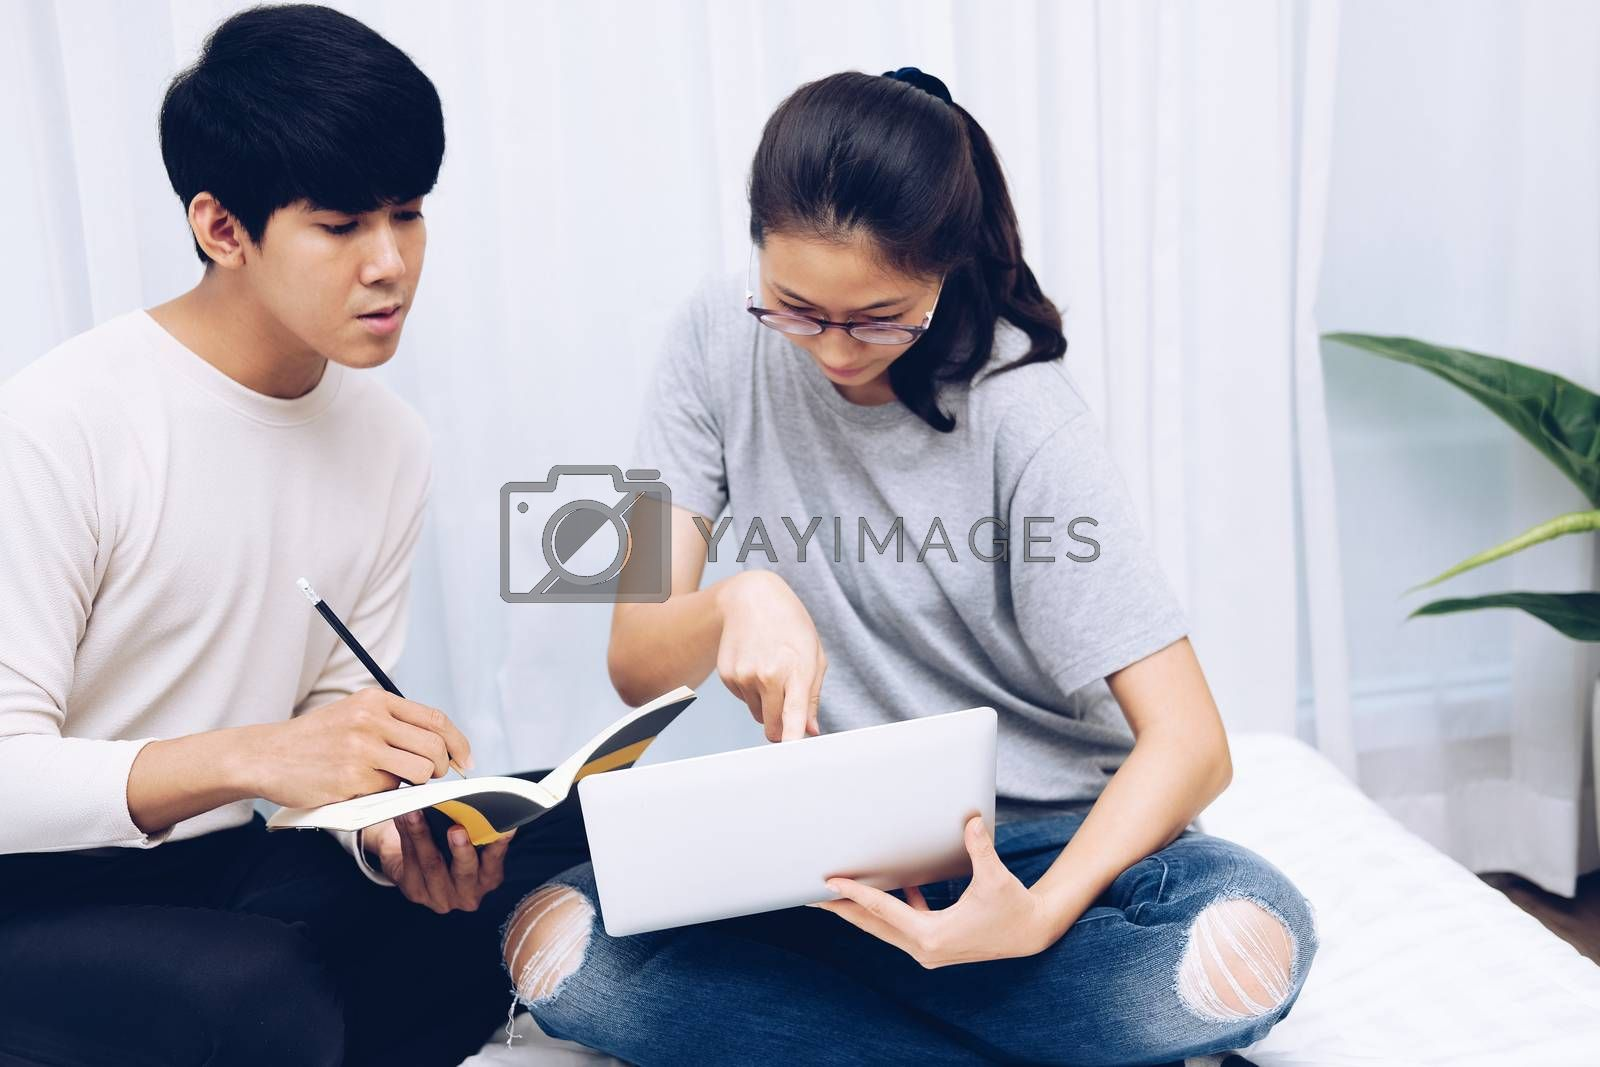 man woman friends students listen lecture studying learning online course on video conference call. work at home